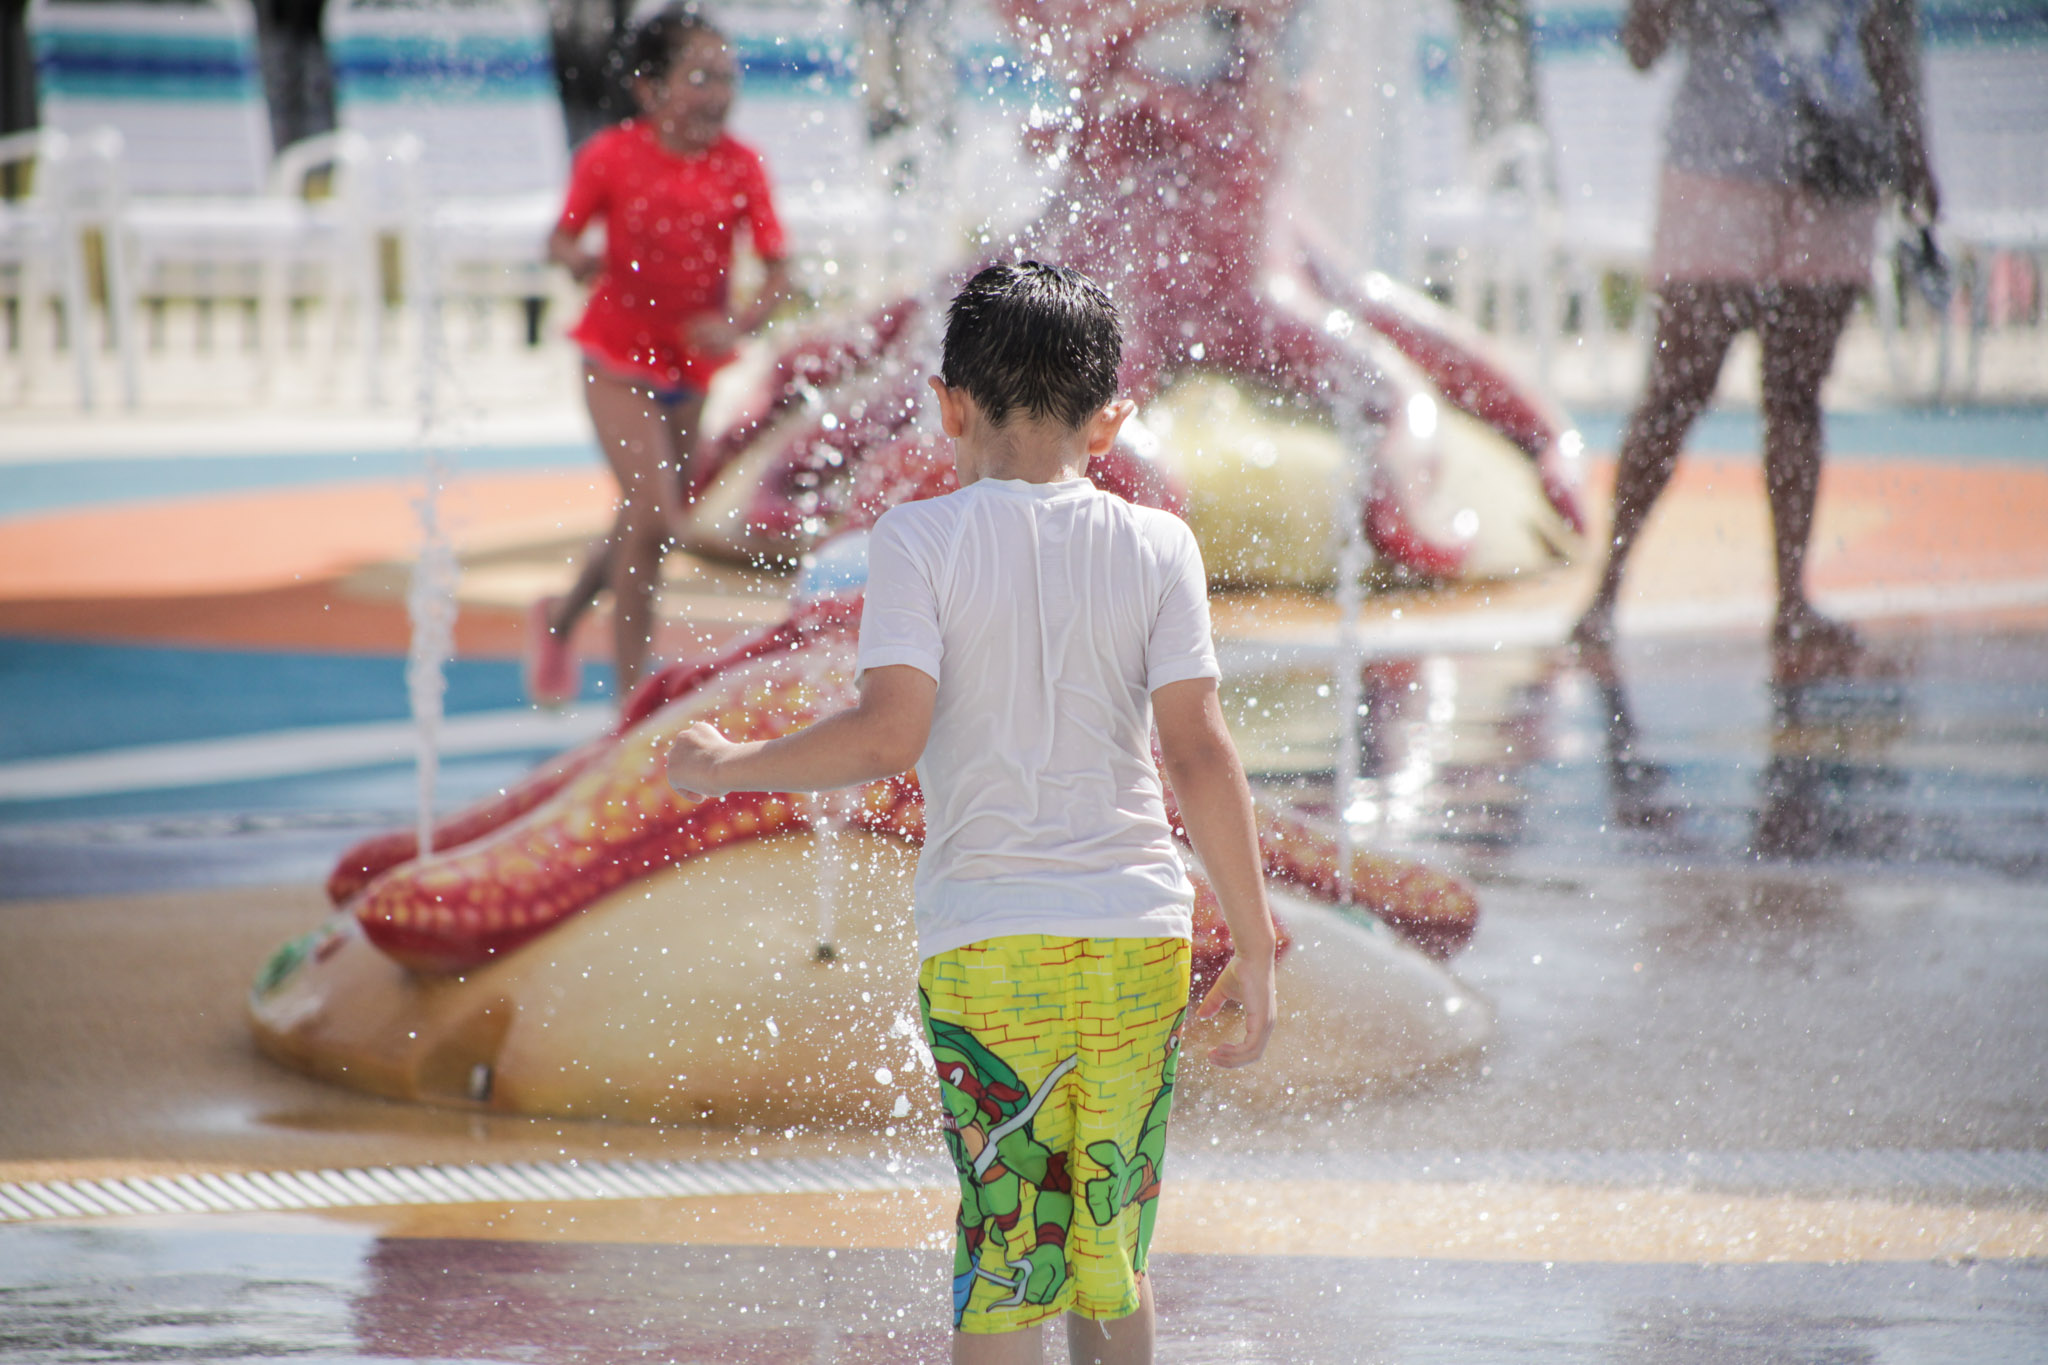 A young boy steps on the water at the new water park Morgan's Inspiration Island.